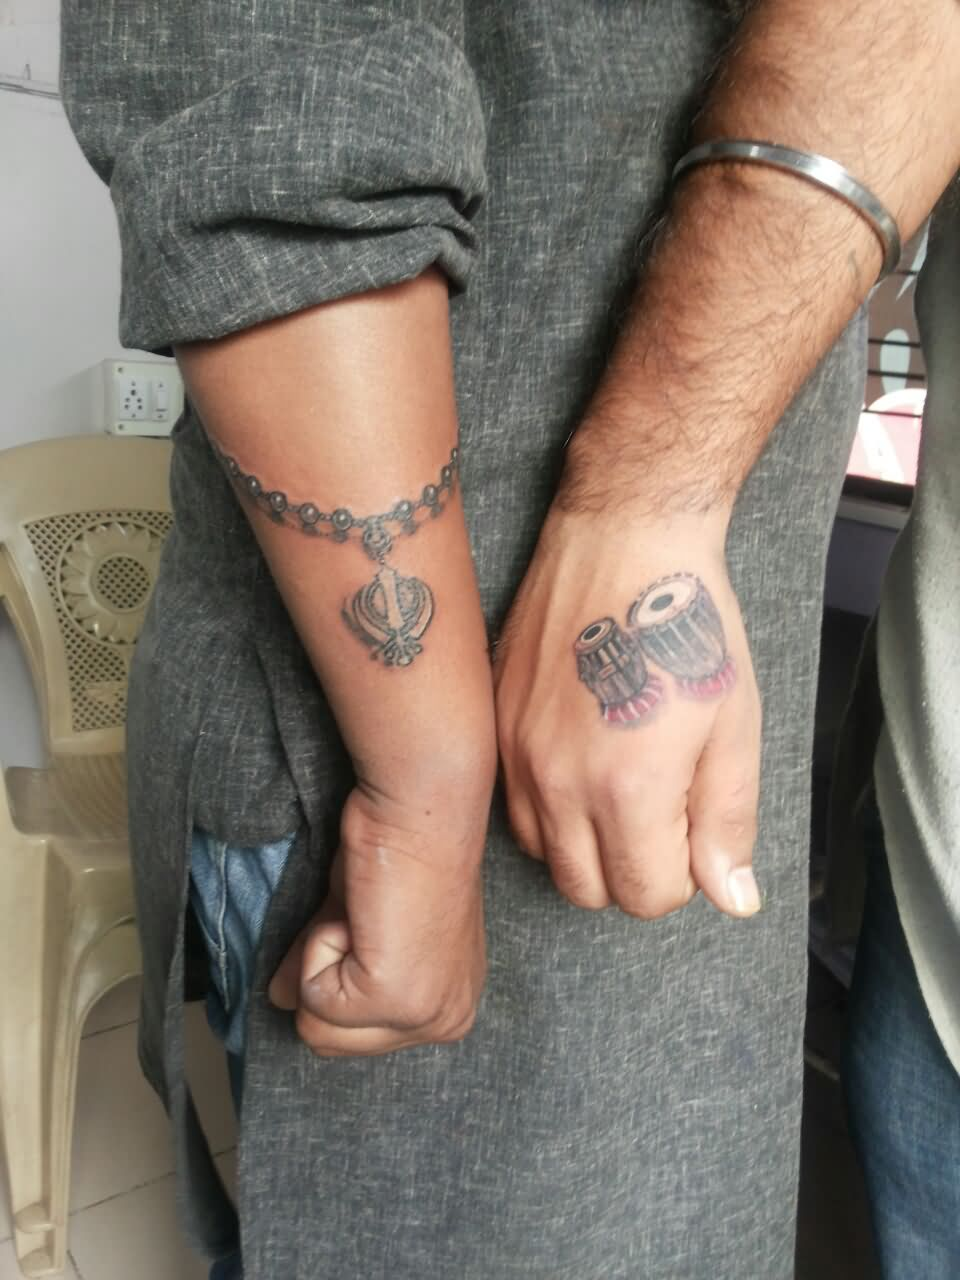 Cartoon Love Couple Hd Wallpapers Punjabi Tattoo Images Amp Designs